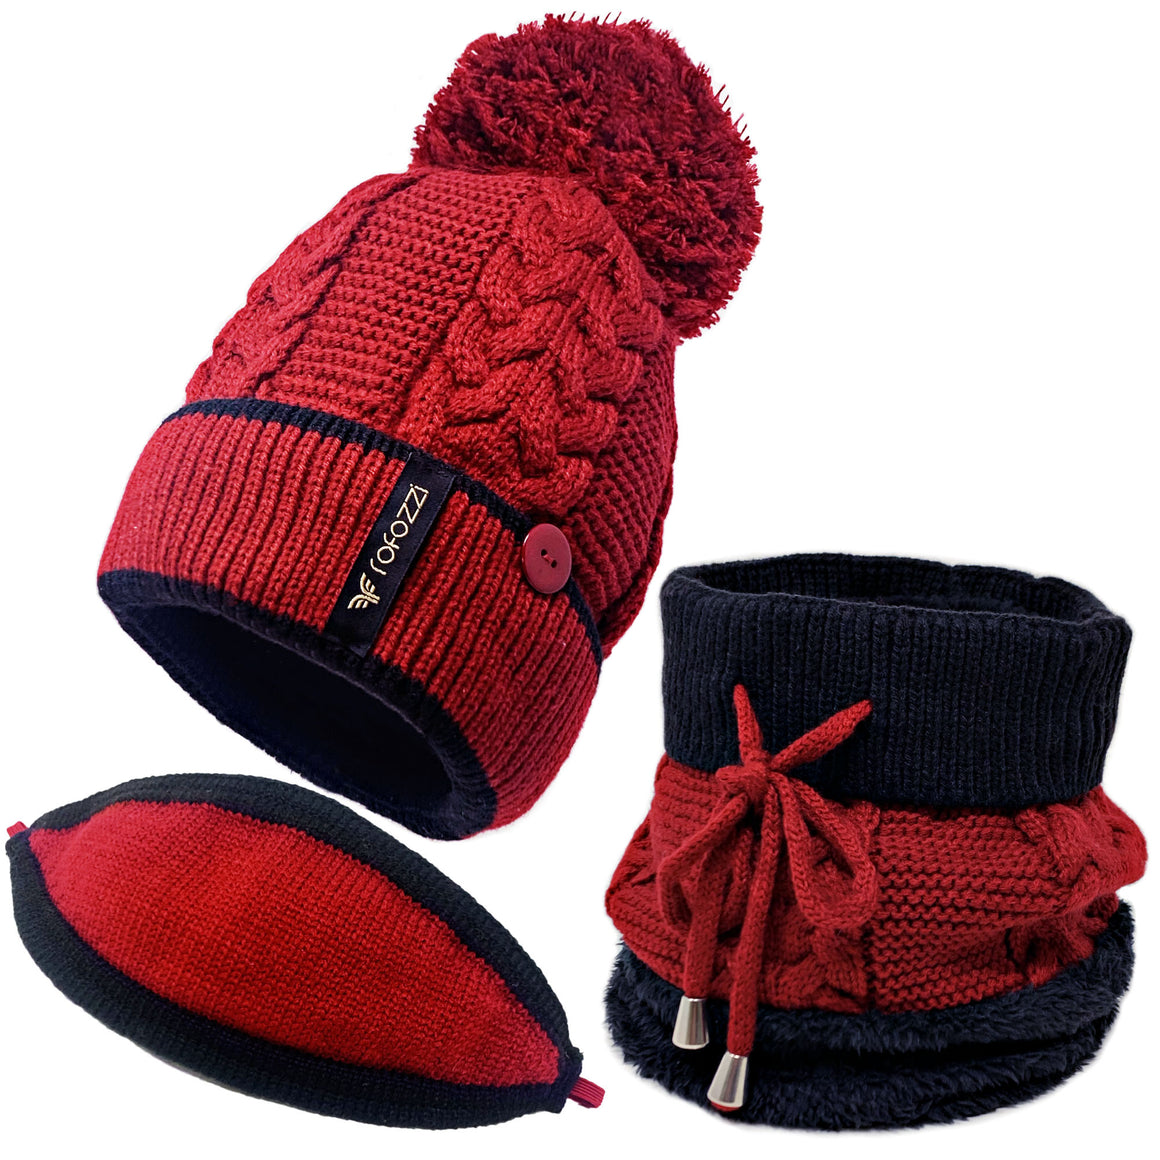 Pompom Beanie Hat Neck Warmer - 3-in-1 - Red